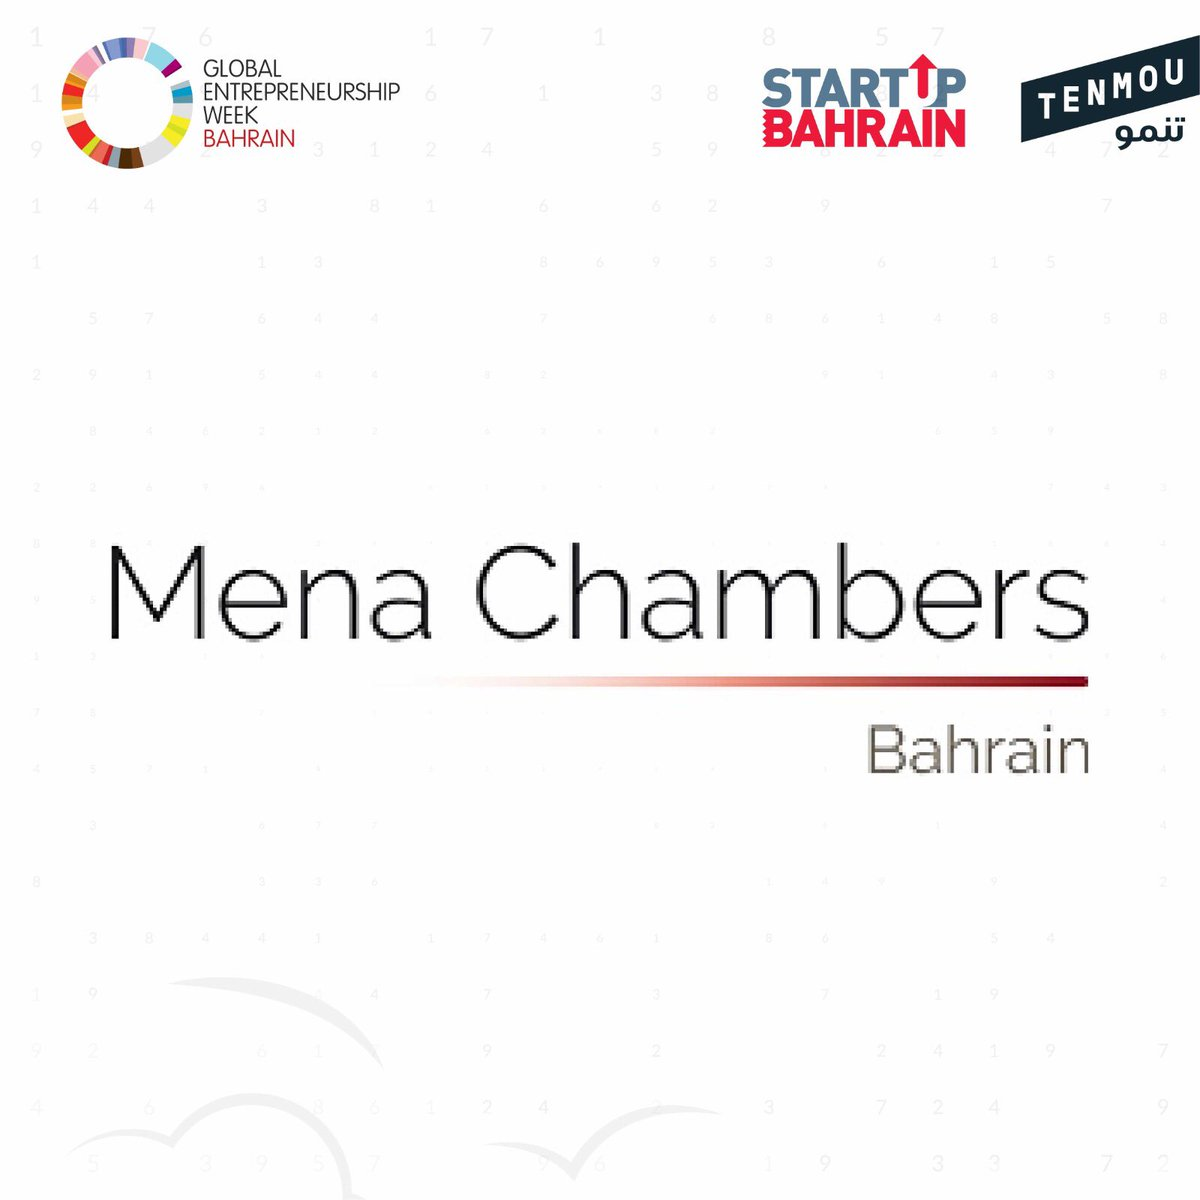 To set you on the right path of a successful journey, the winner of the StartUp Bahrain Pitch Competition will enjoy USD 7000 worth of legal and setup fee perks from Tenmou, The Collective Hub, Mena Chambers, along with 1:1 mentoring from Flat6labs Bahrain and Plus VC. Apply now https://t.co/Ex9ieQ8MHA